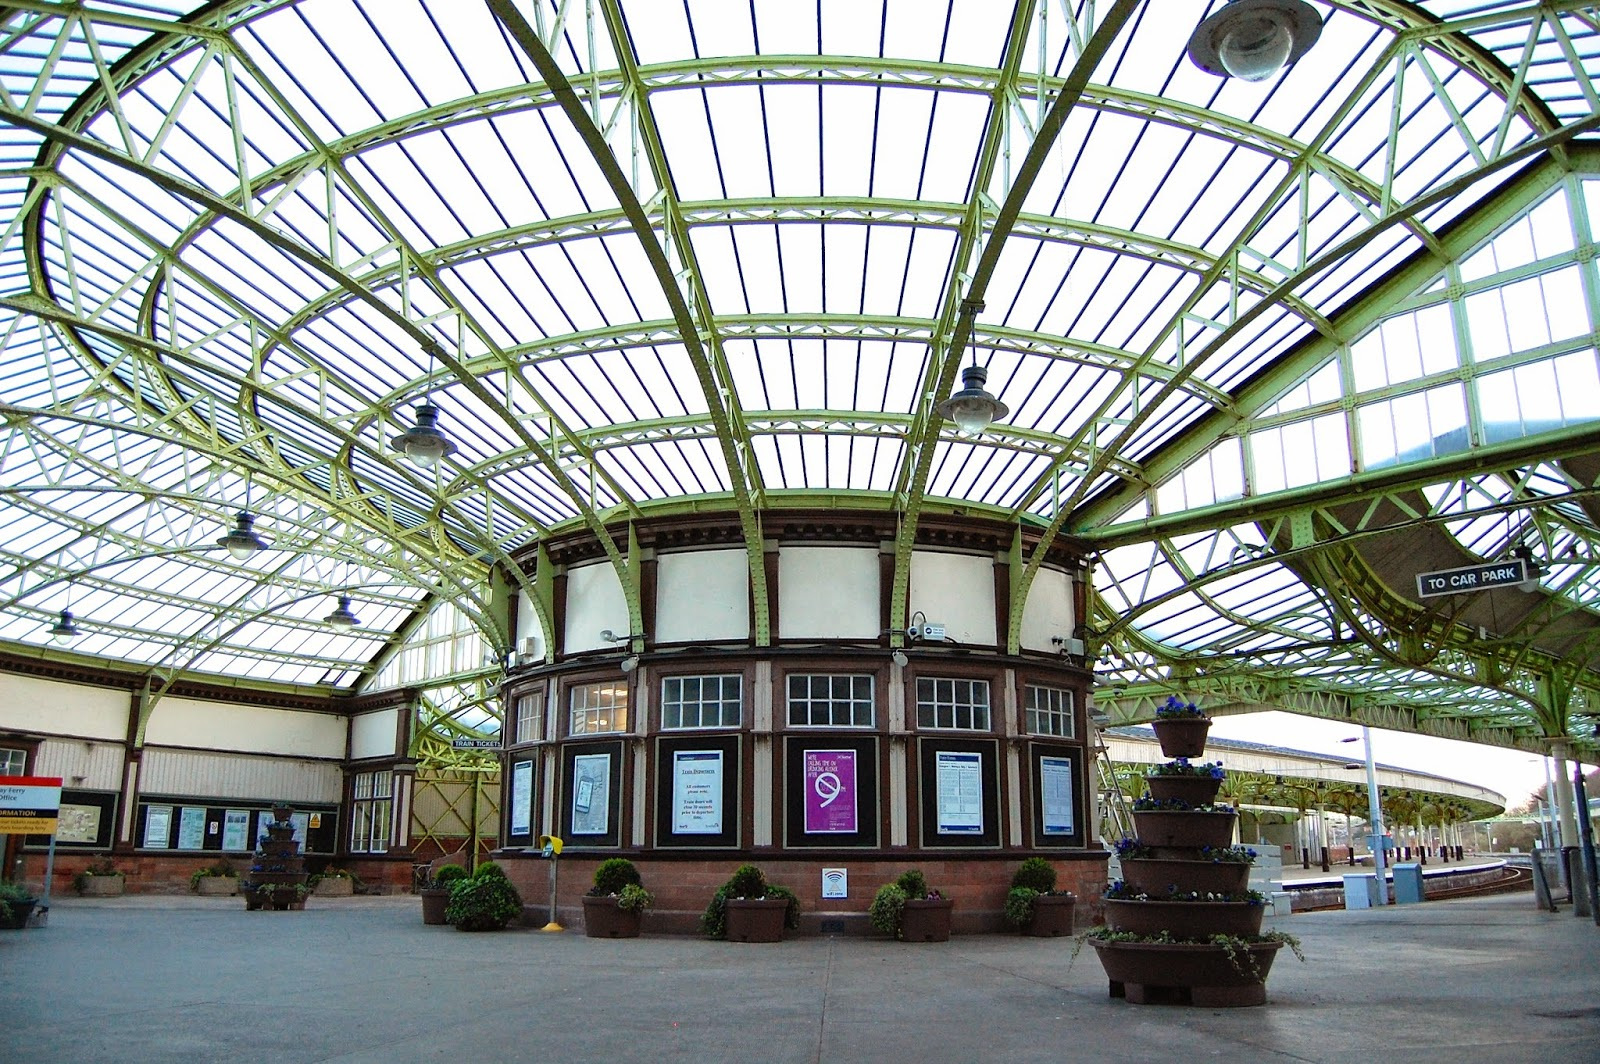 Wemyss Bay train station and ferry station, railway architecture in Scotland